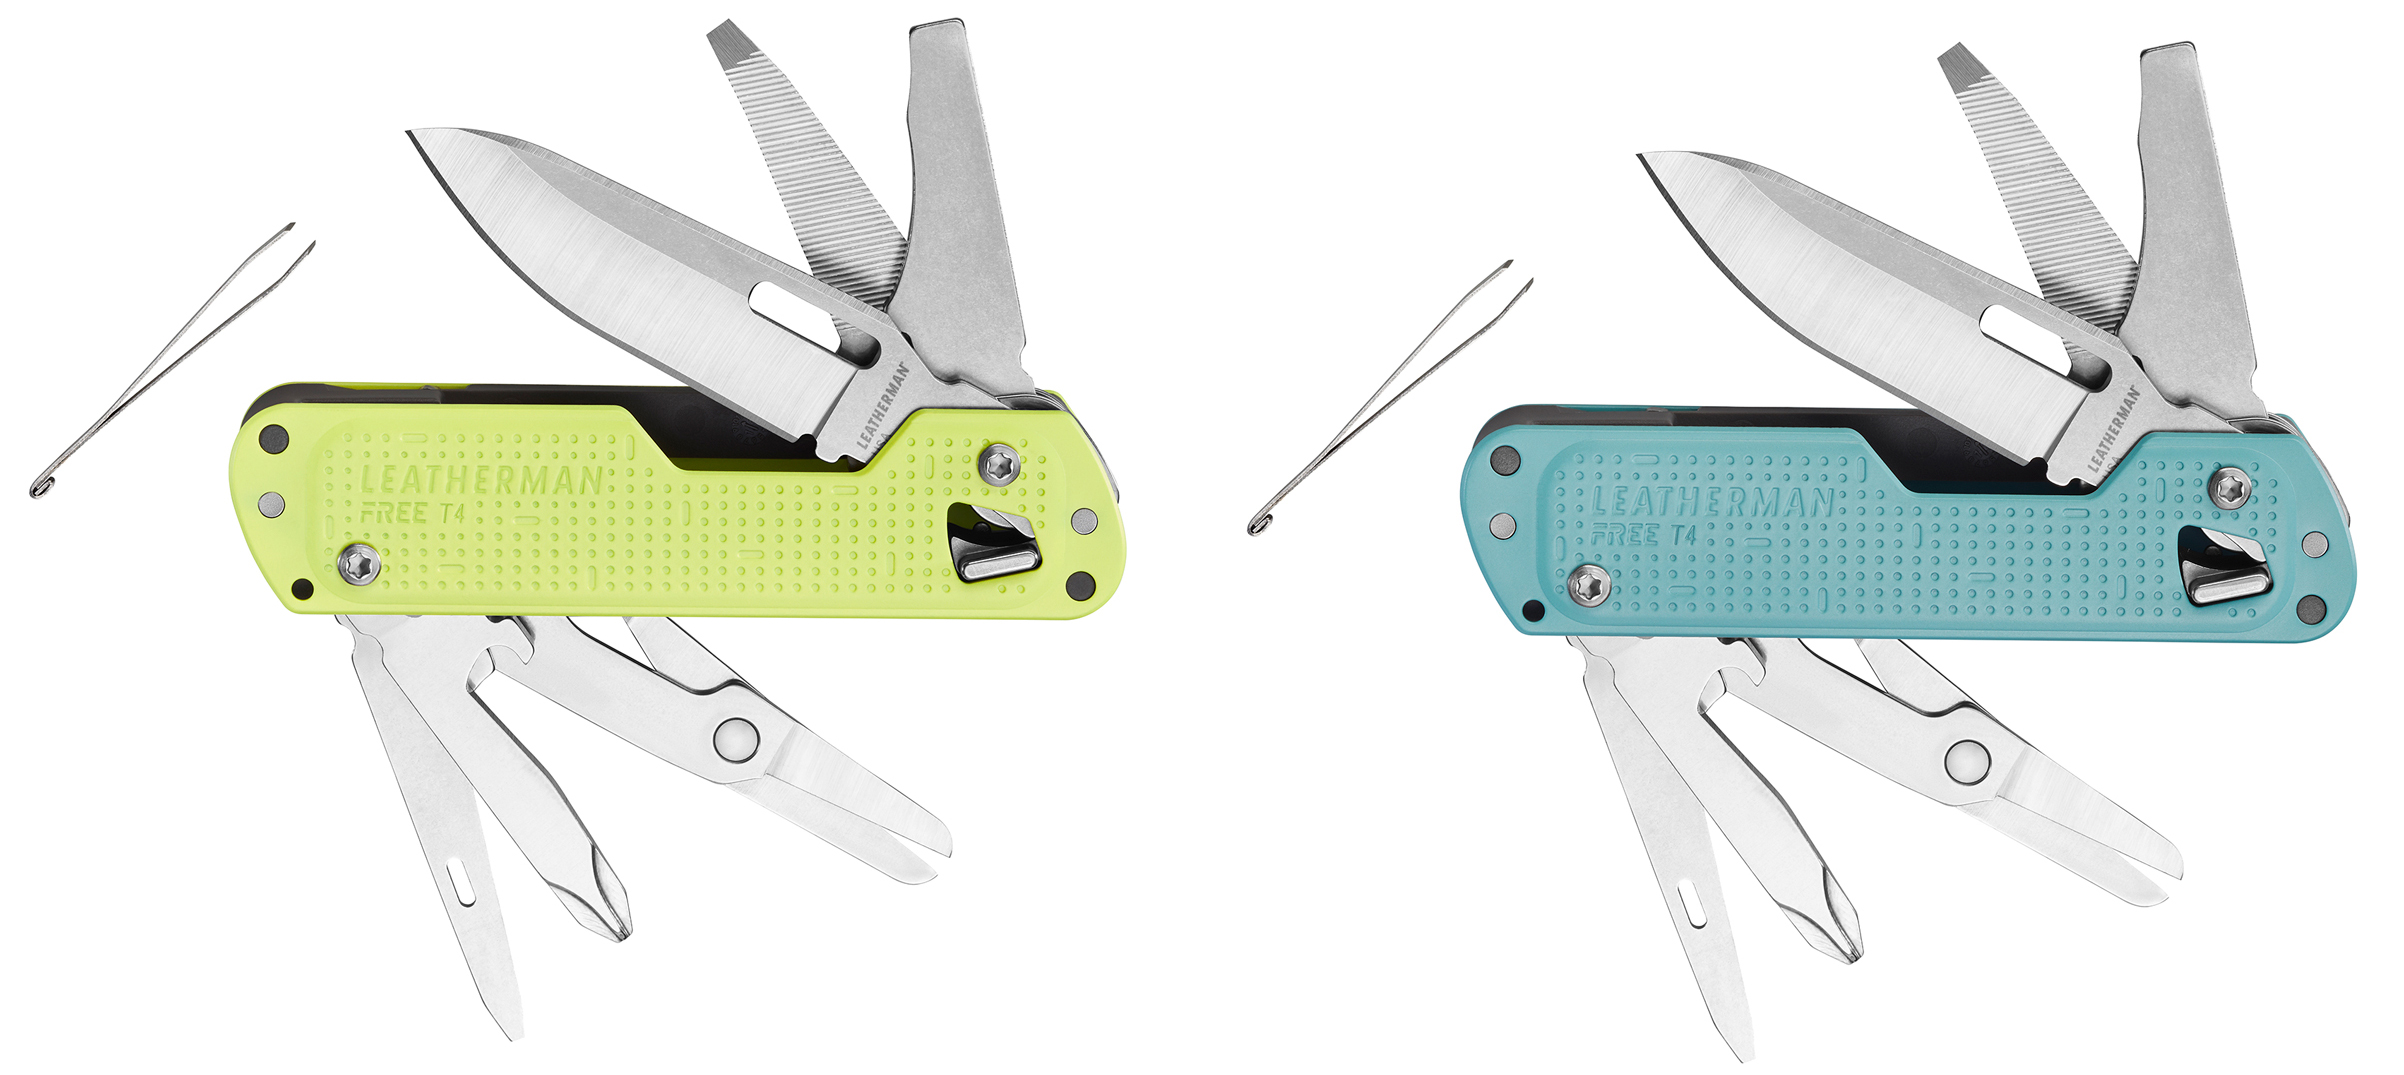 Leatherman Free T4 Lunar Arctic colors